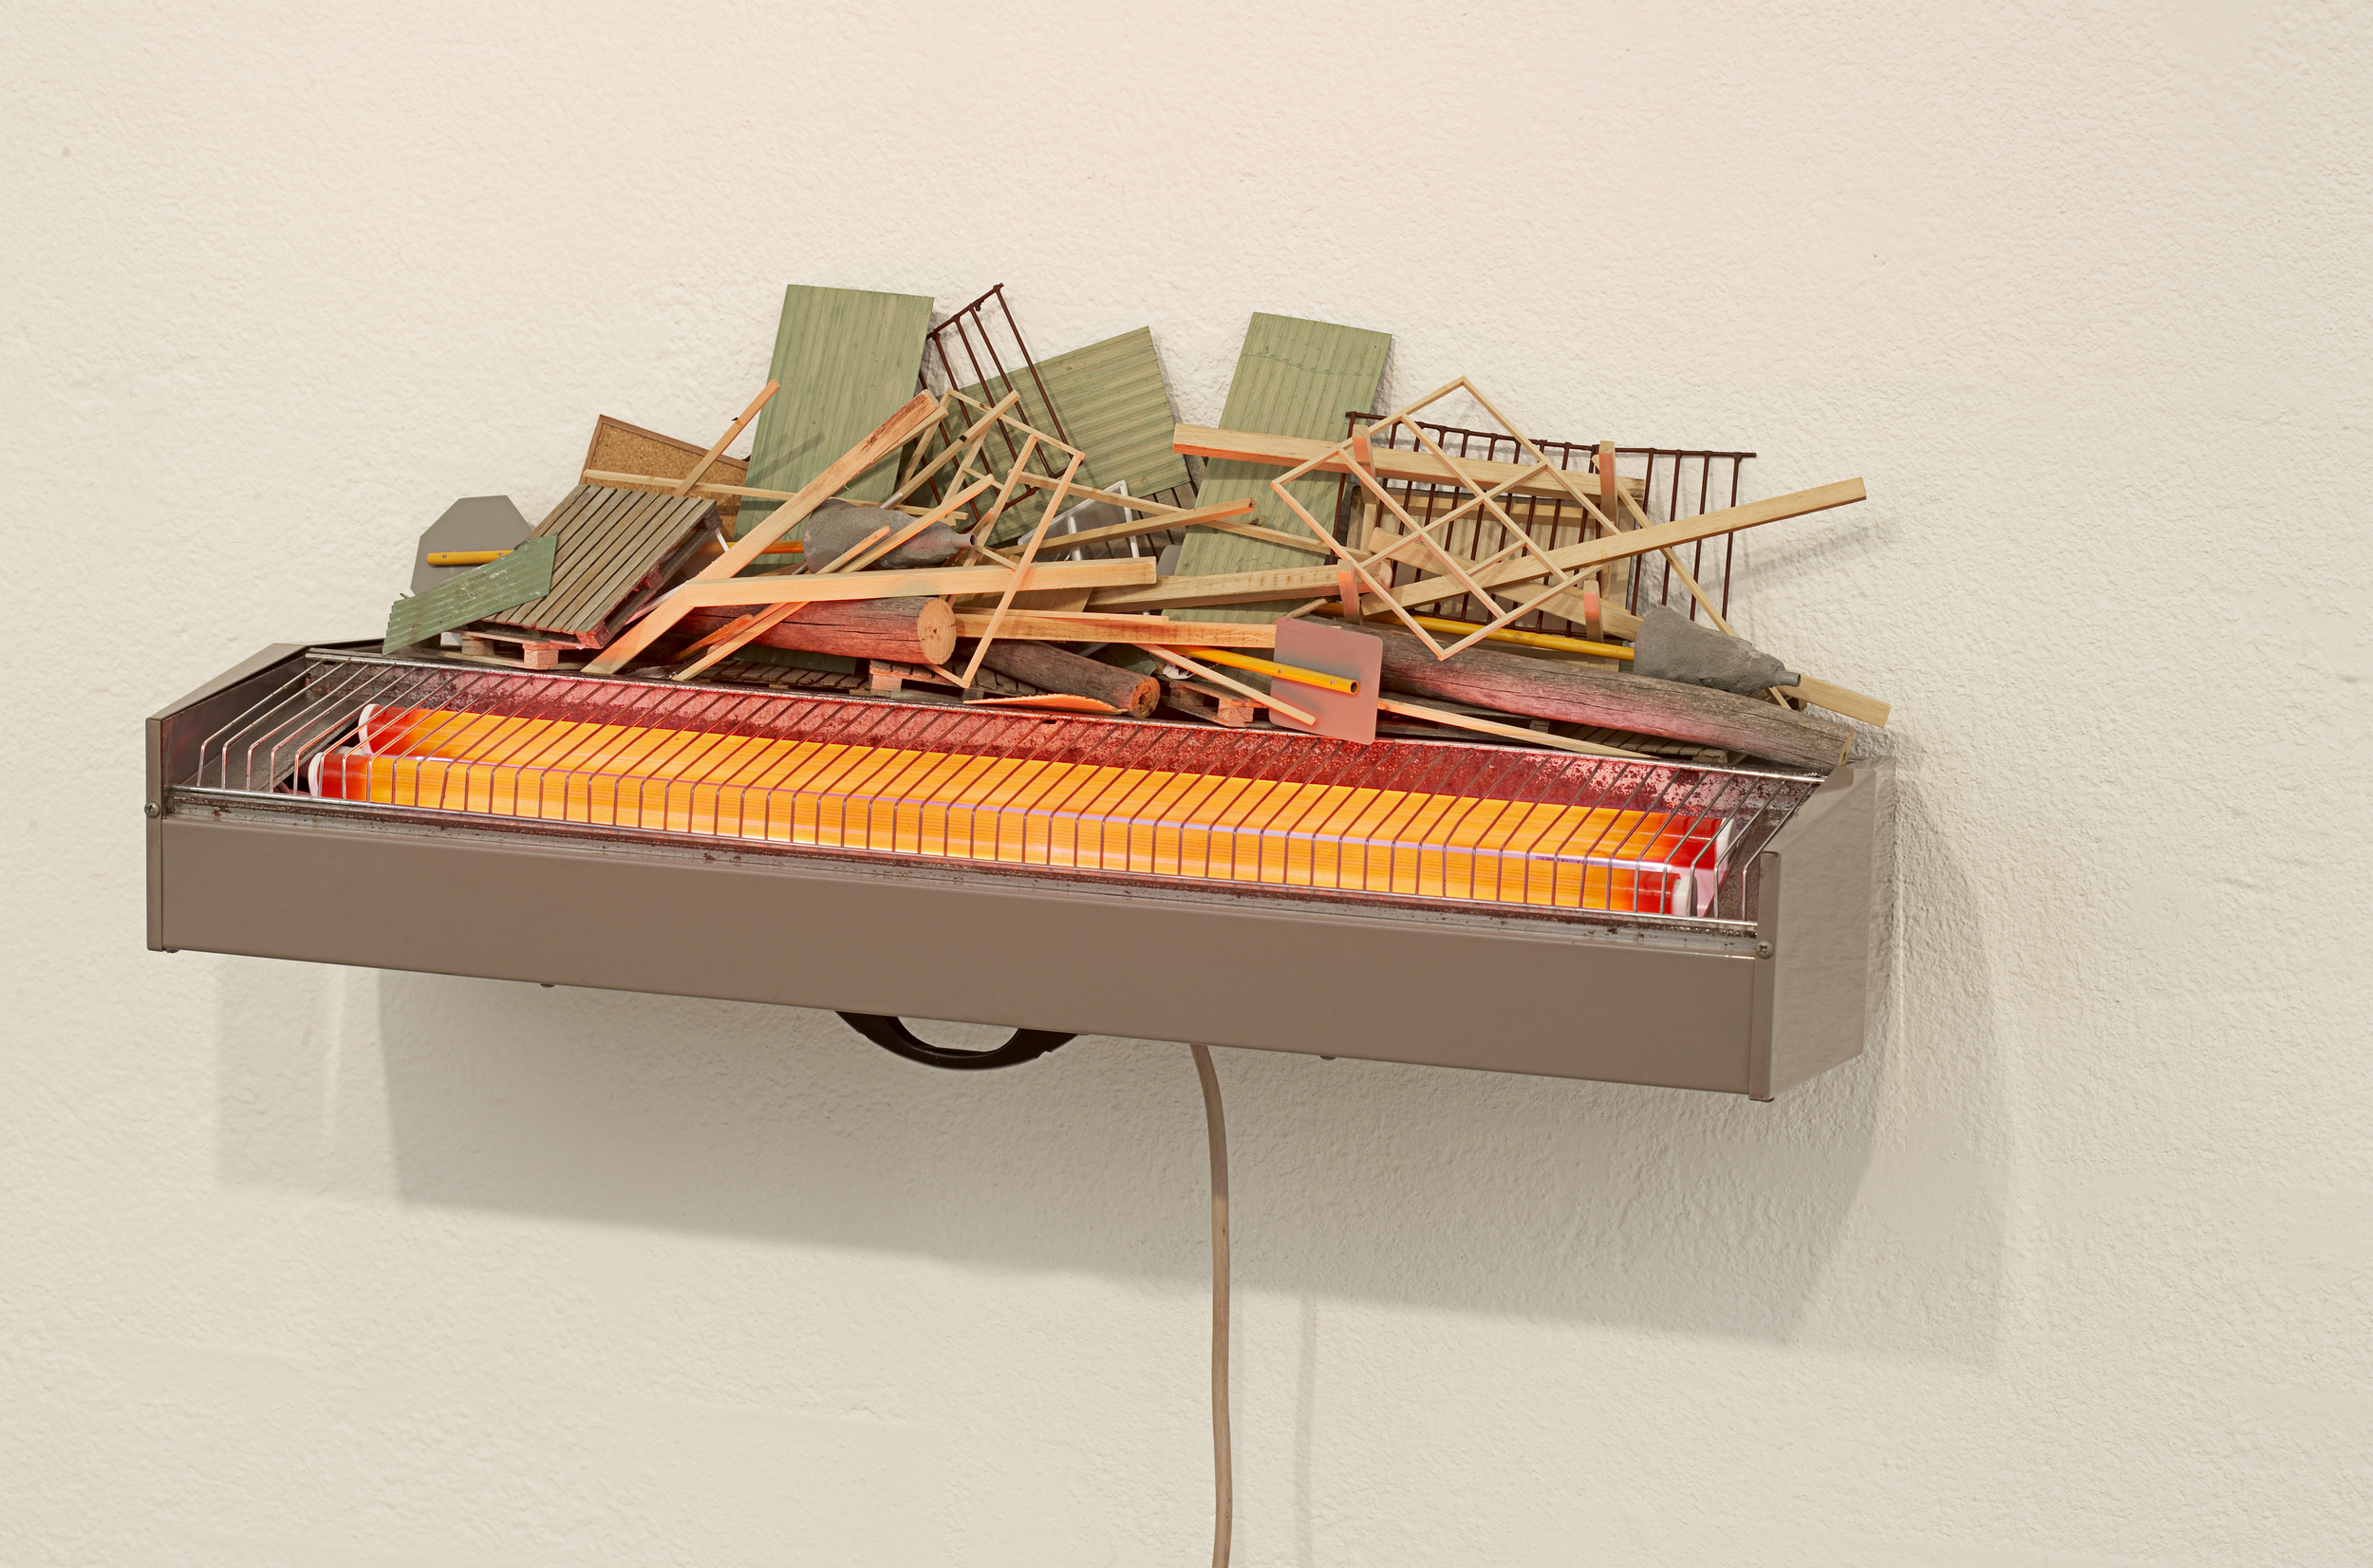 Barricade, 2008 Mixed Media. Dimensions Variable 30 x 70 x 26 cm as exhibited